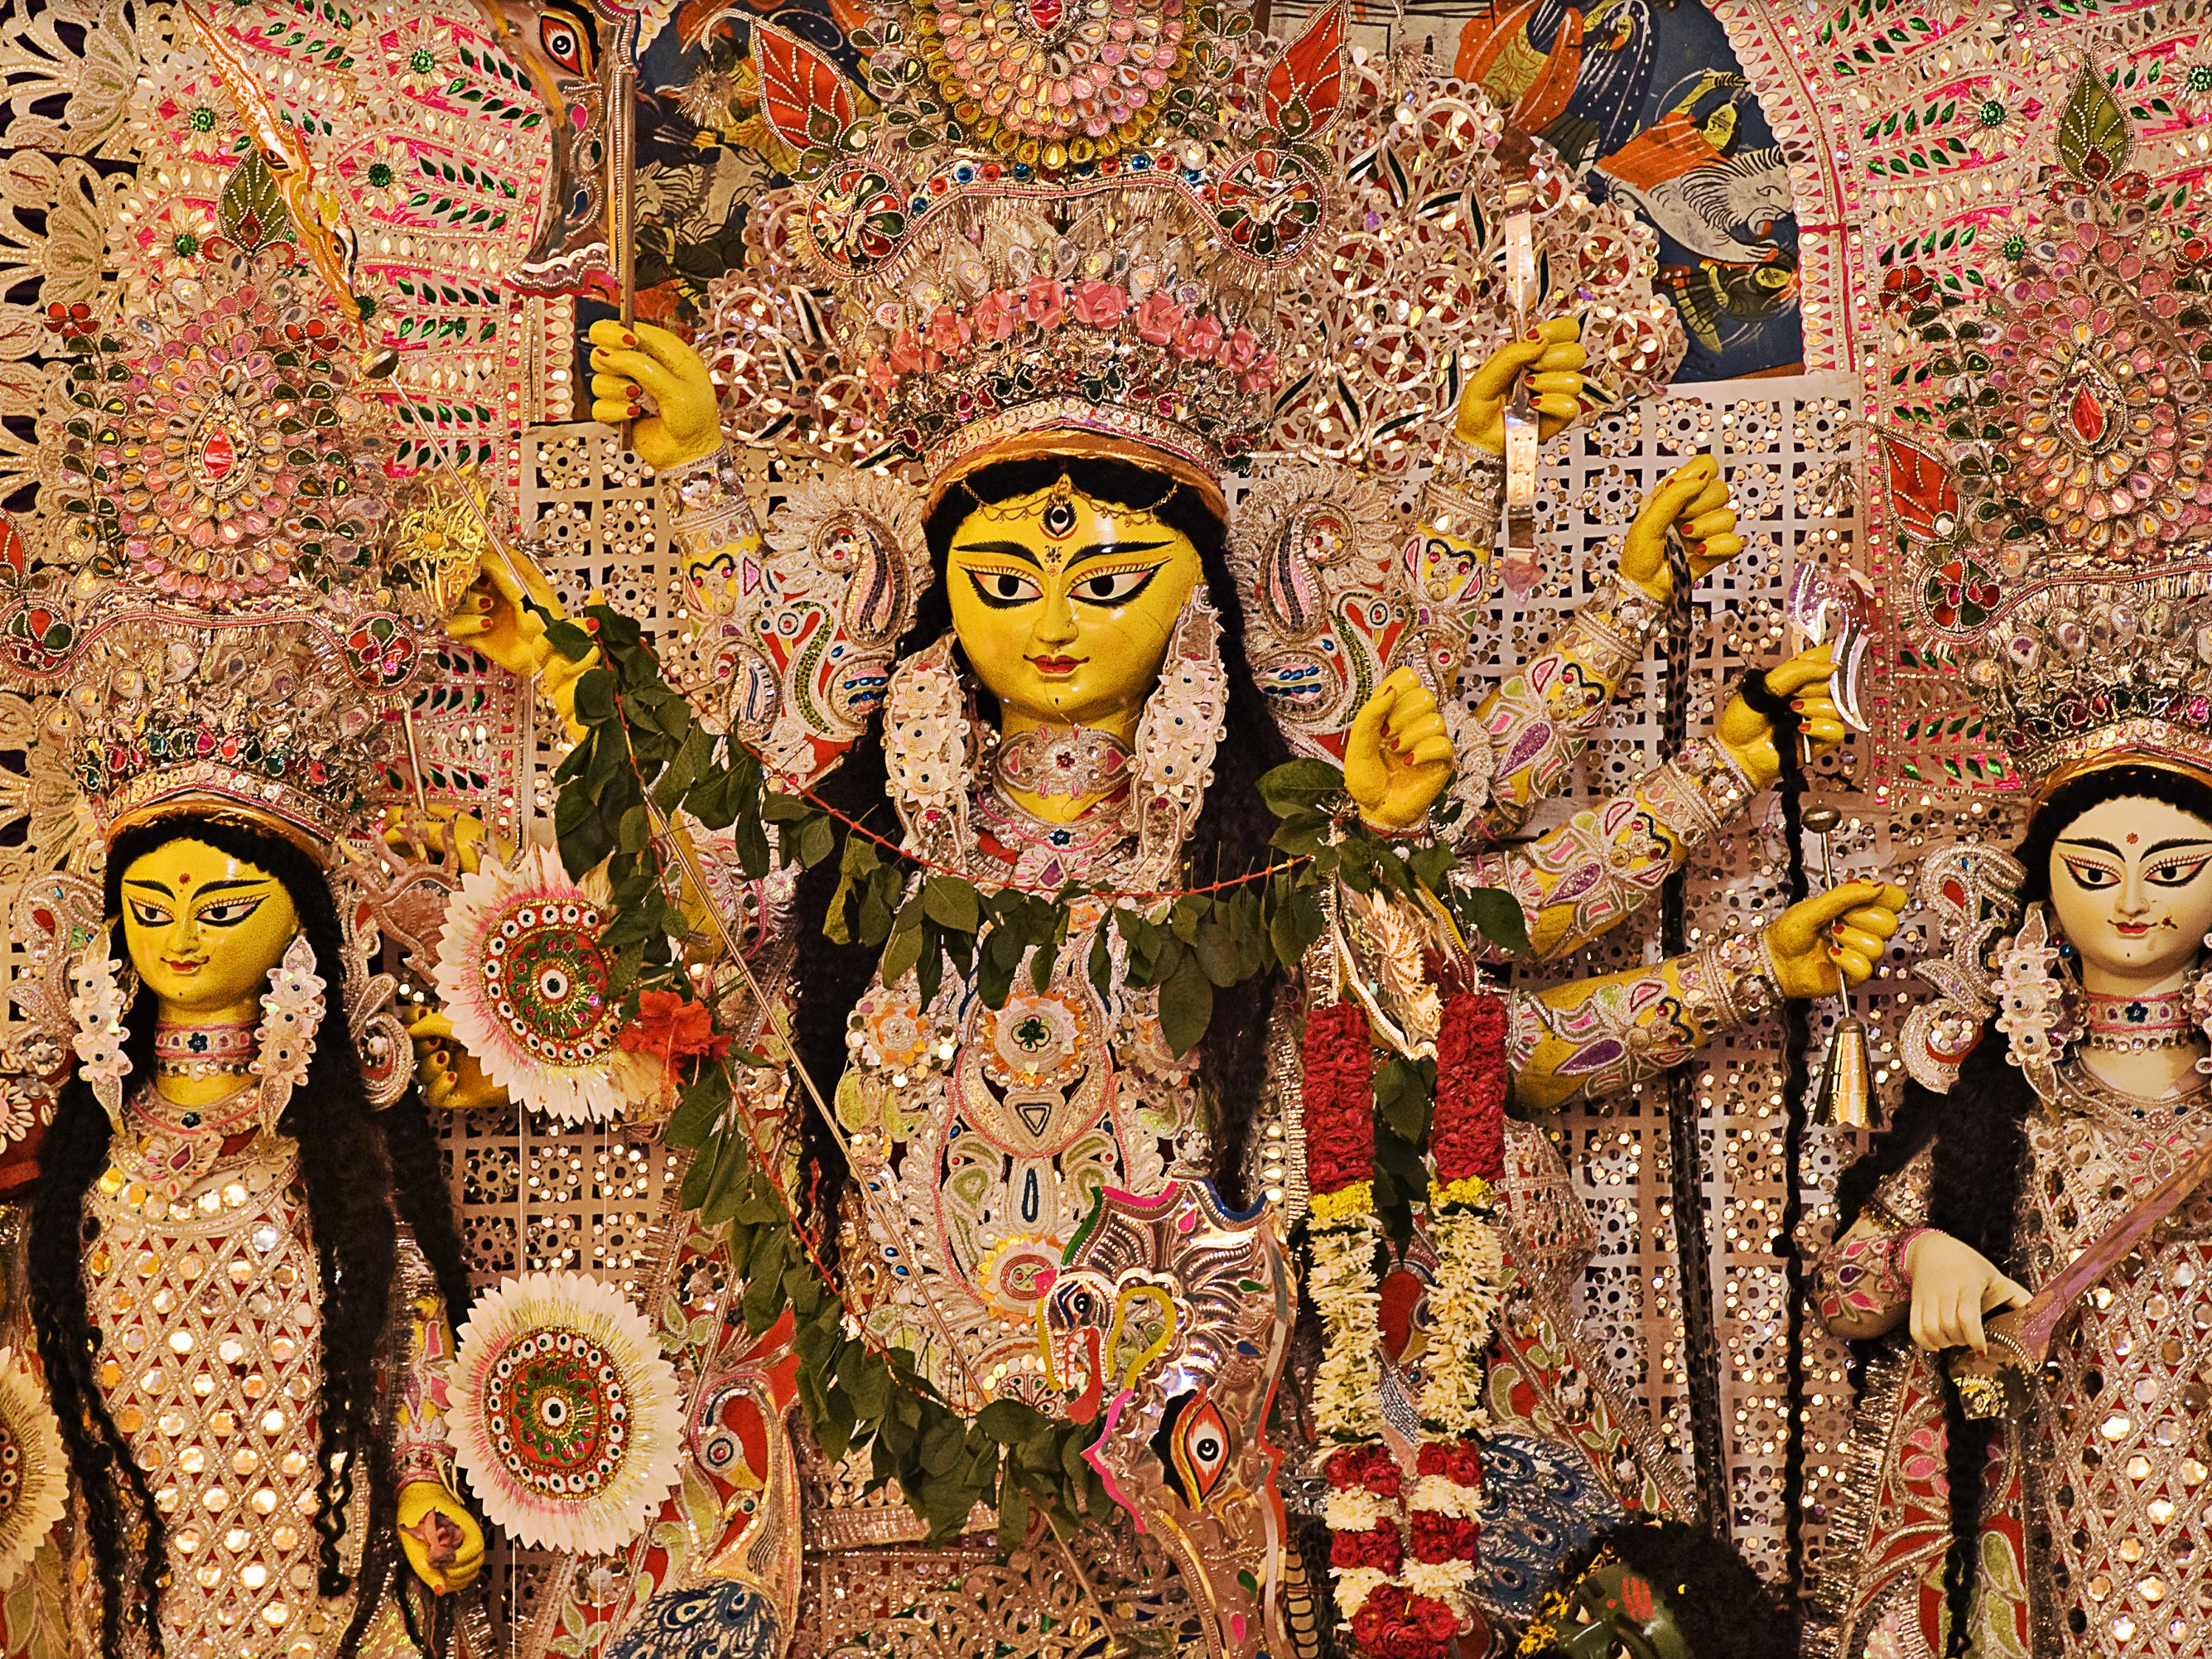 When Is Durga Puja in 2019, 2020, and 2021?